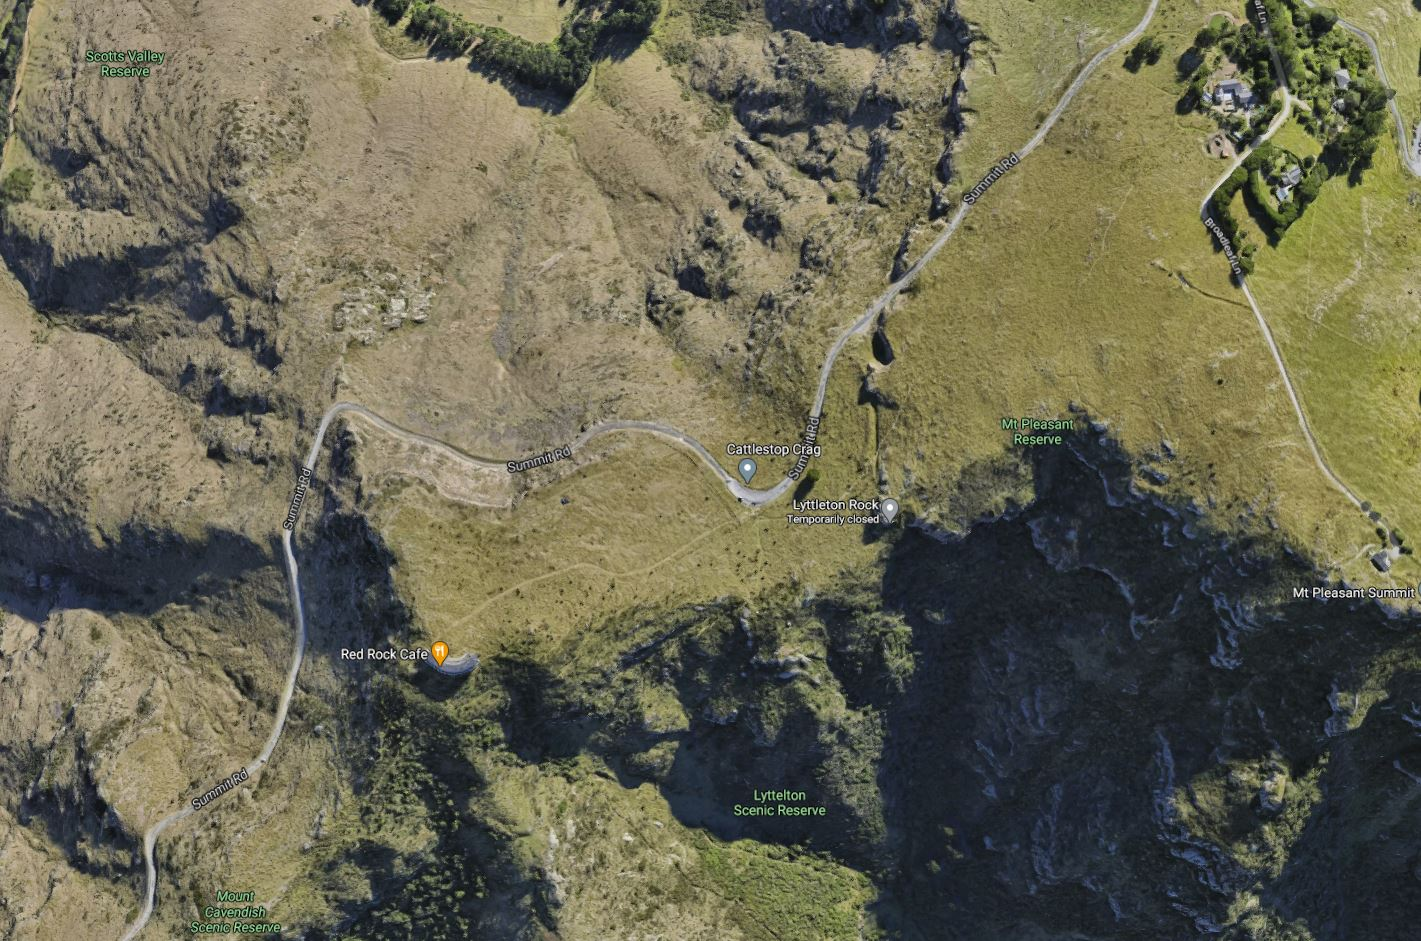 The woman's body was found at the bottom of the Cattlestop Crag rock climbing area. Photo: Google